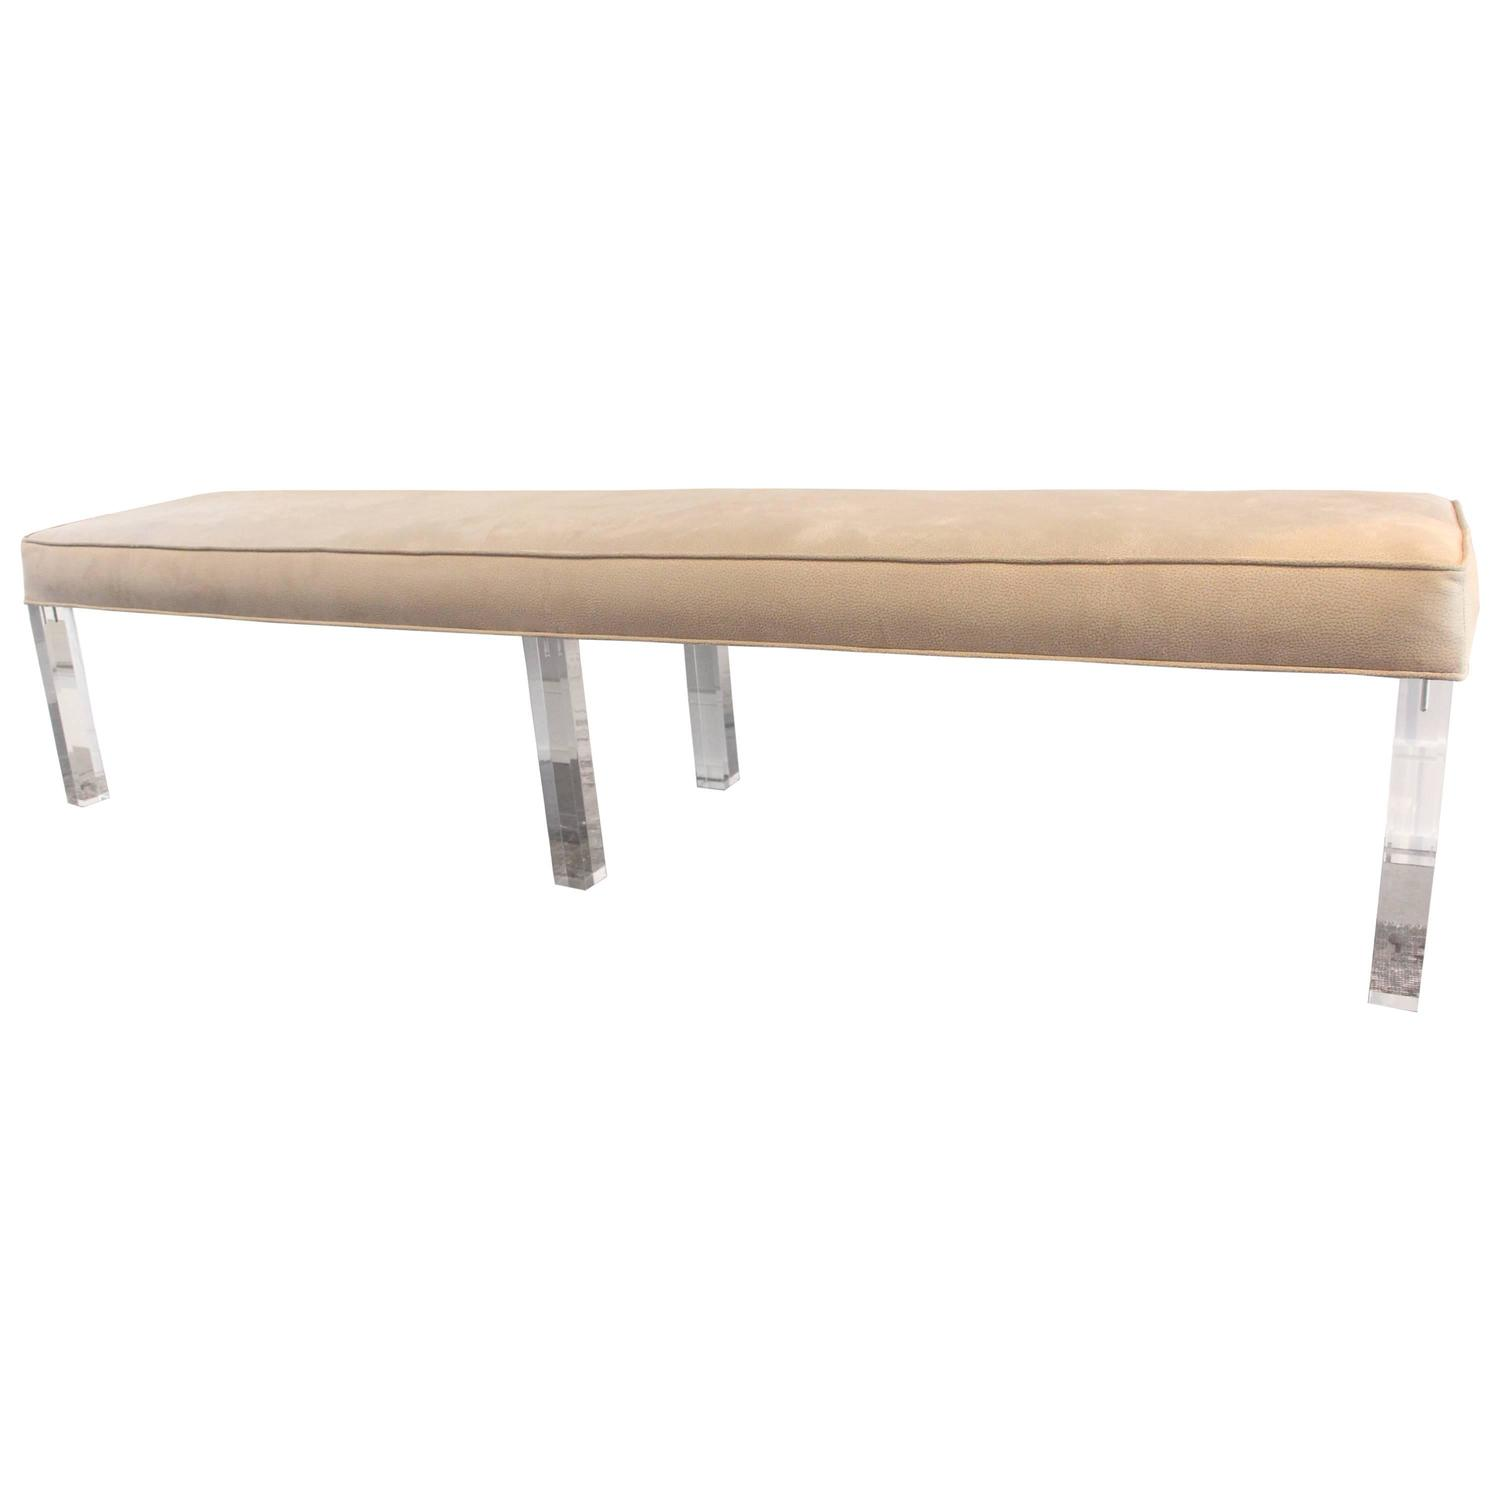 Lucite Benches 28 Images Modern Lucite Bench With Mohair Cushion At 1stdibs Lucite Bench By